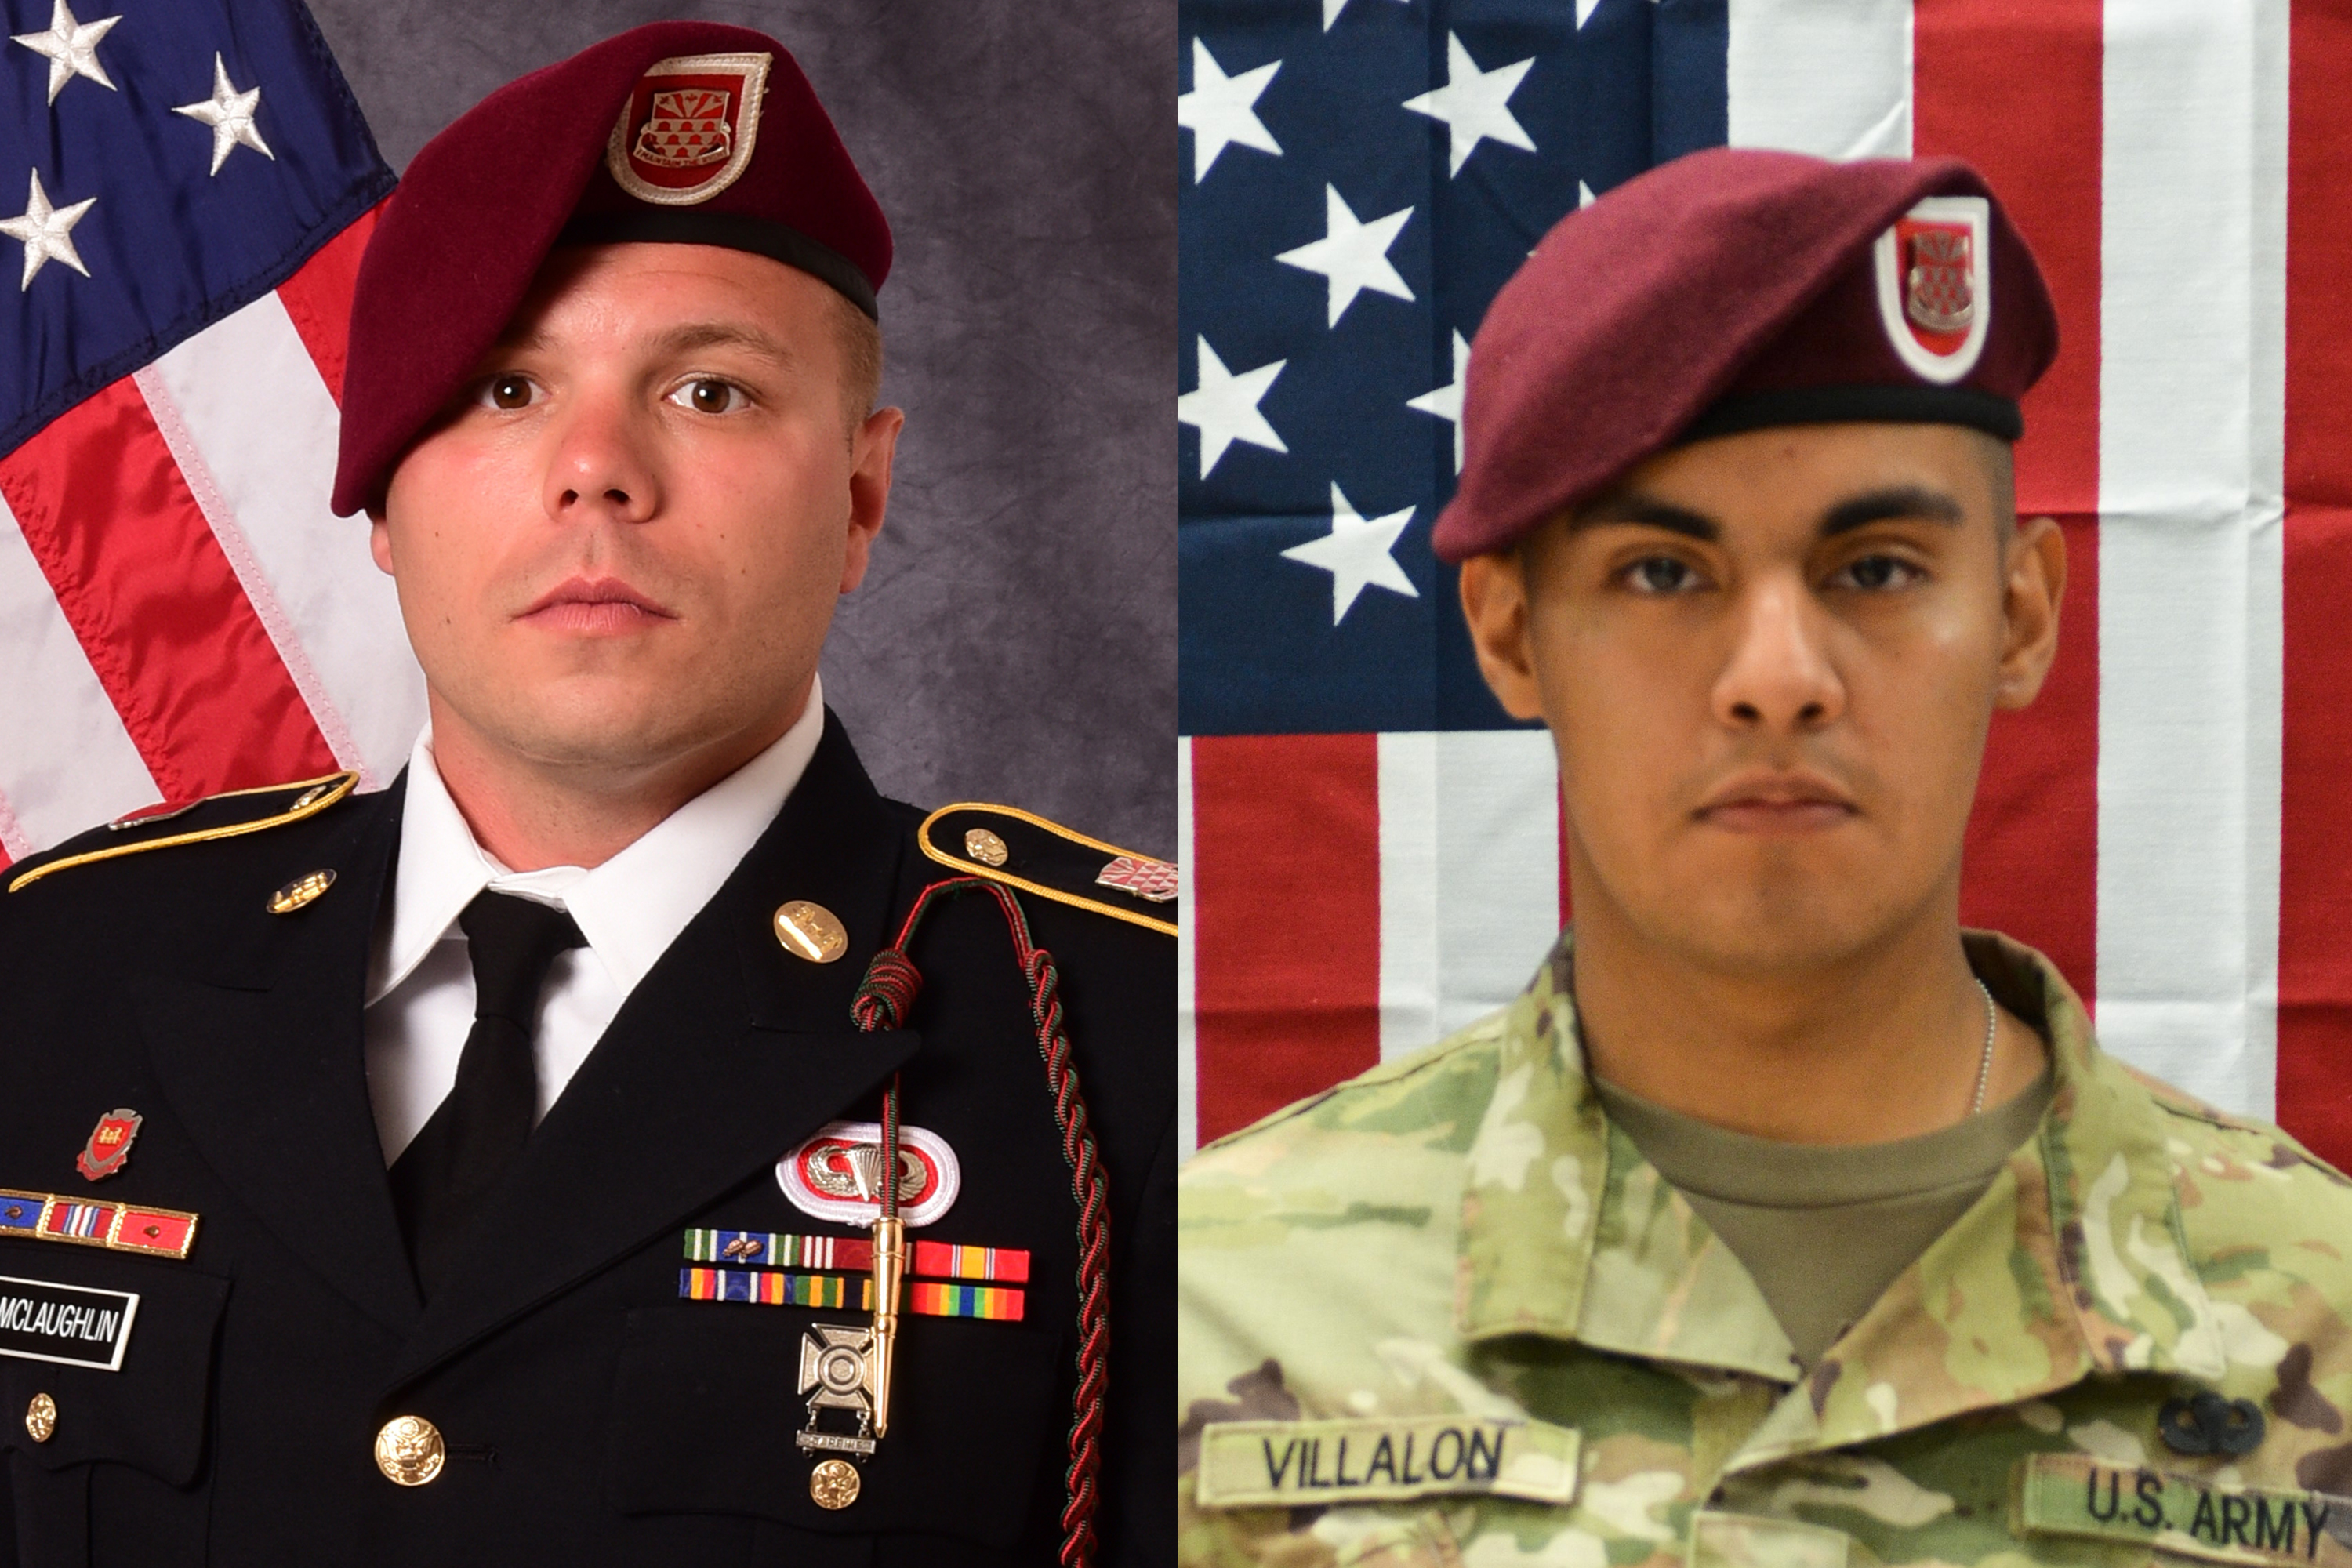 Army IDs Two Paratroopers Killed by Roadside Bomb in Afghanistan